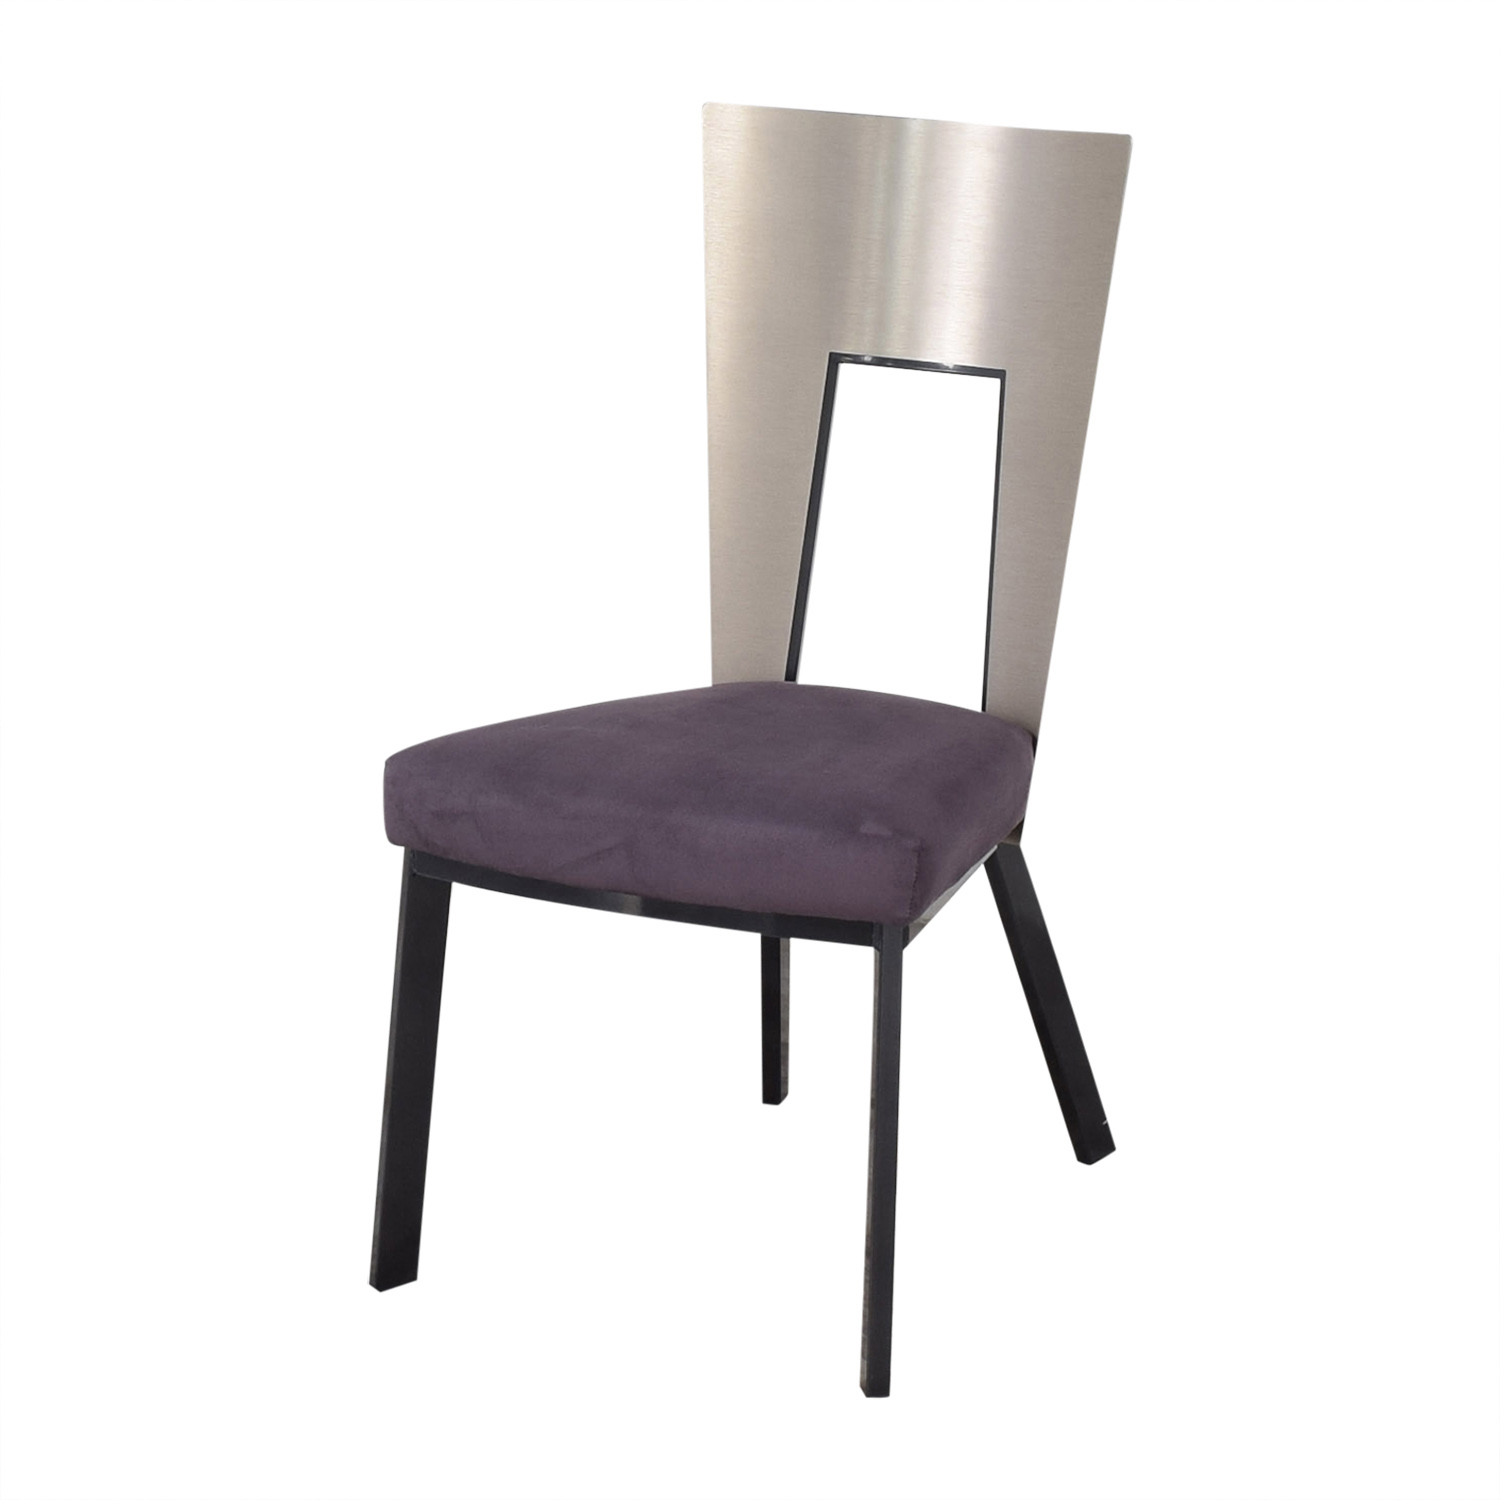 shop Elite Modern Regal Dining Chairs Elite Modern Dining Chairs